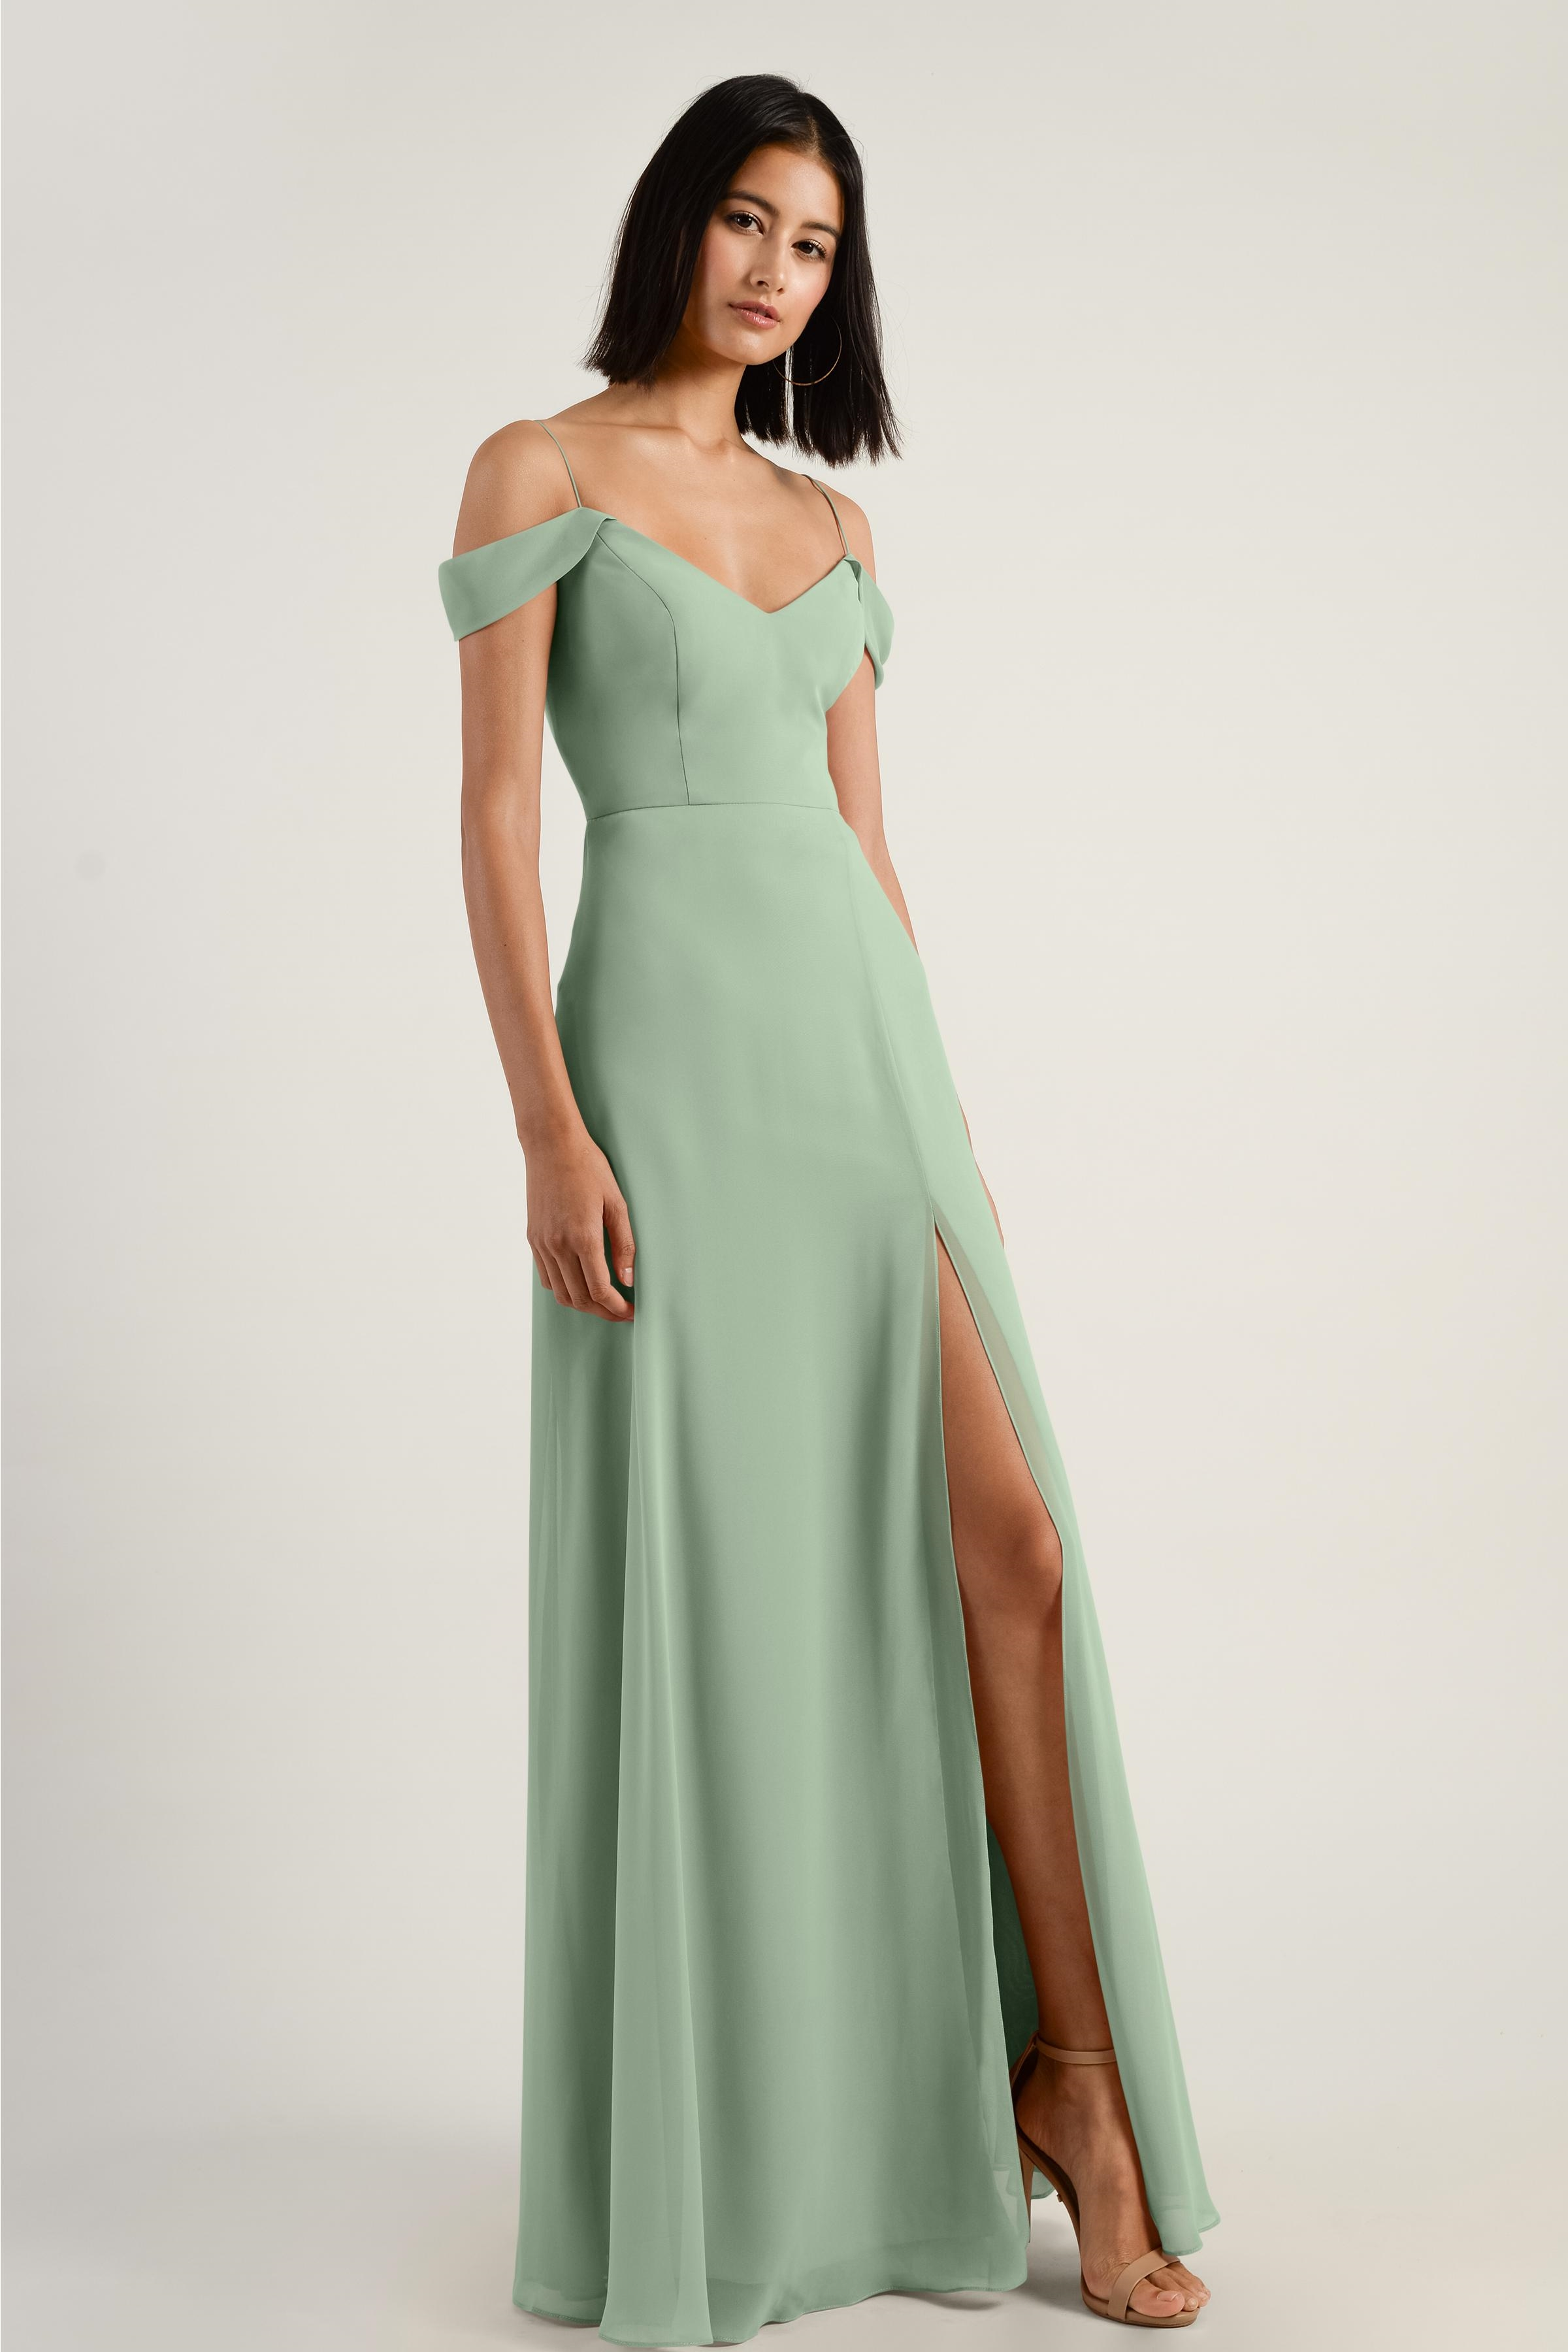 The Priya dress has a flattering soft A line silhouette with a spaghetti strap V neckline in our flowy Luxe Chiffon. An modern off the shoulder folded sleeve slopes into a soft V in the front and back of the bodice. The defined waist gives way to a long skirt with a flirty above the knee princess seam slit. This bridesmaid dress is fully lined with an invisible center back zipper.